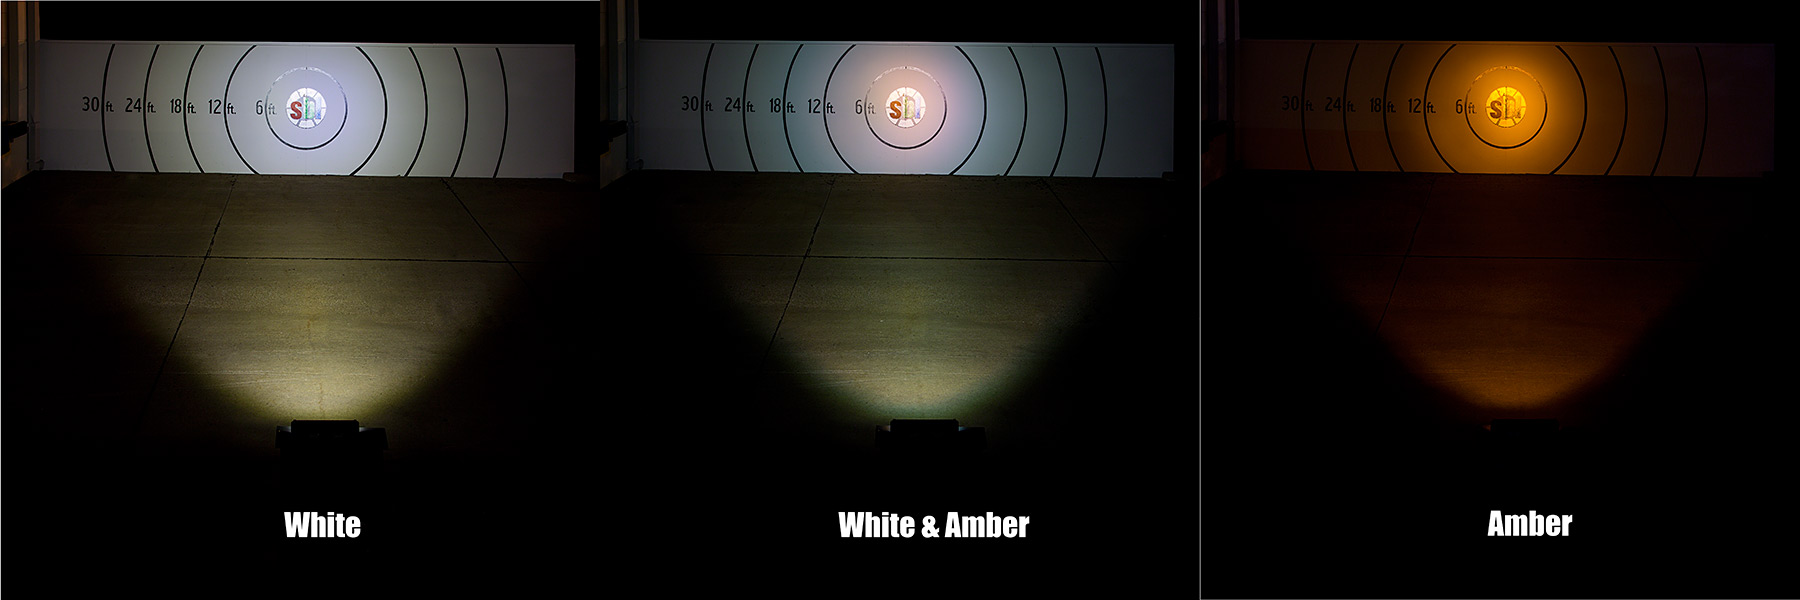 hight resolution of 18 amber white led off road light bar 24w beam pattern on target from 30 feet away